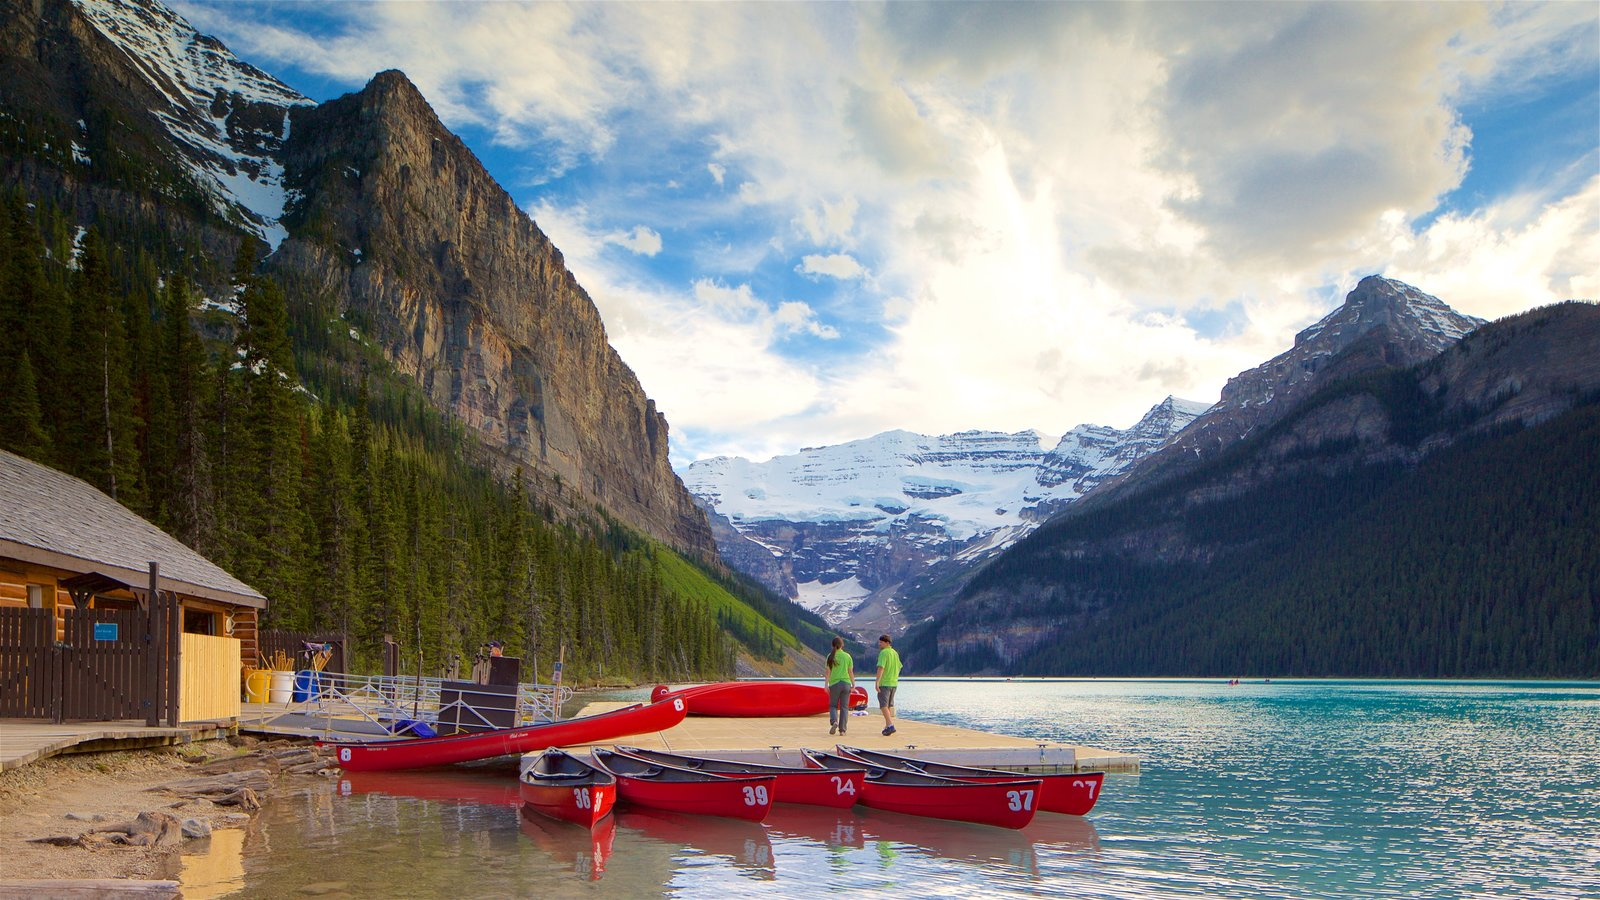 Banff National Park showing kayaking or canoeing, a sandy beach and a lake or waterhole